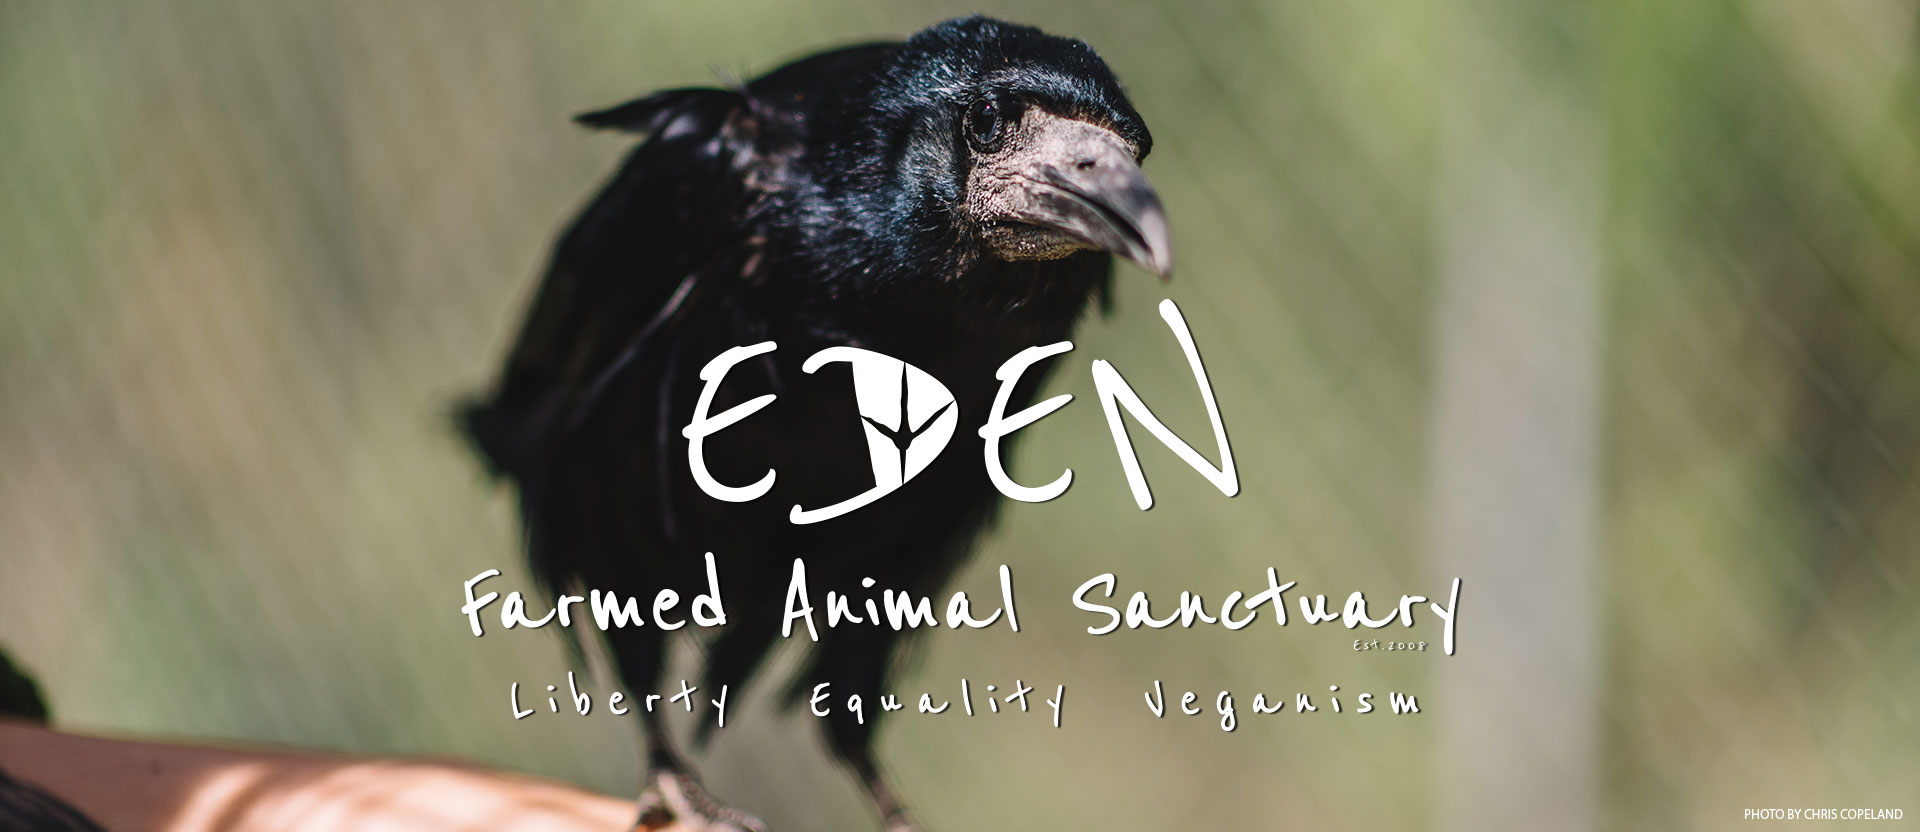 Eden Farmed Animal Sanctuary - Liberty, Equality, Vaganism